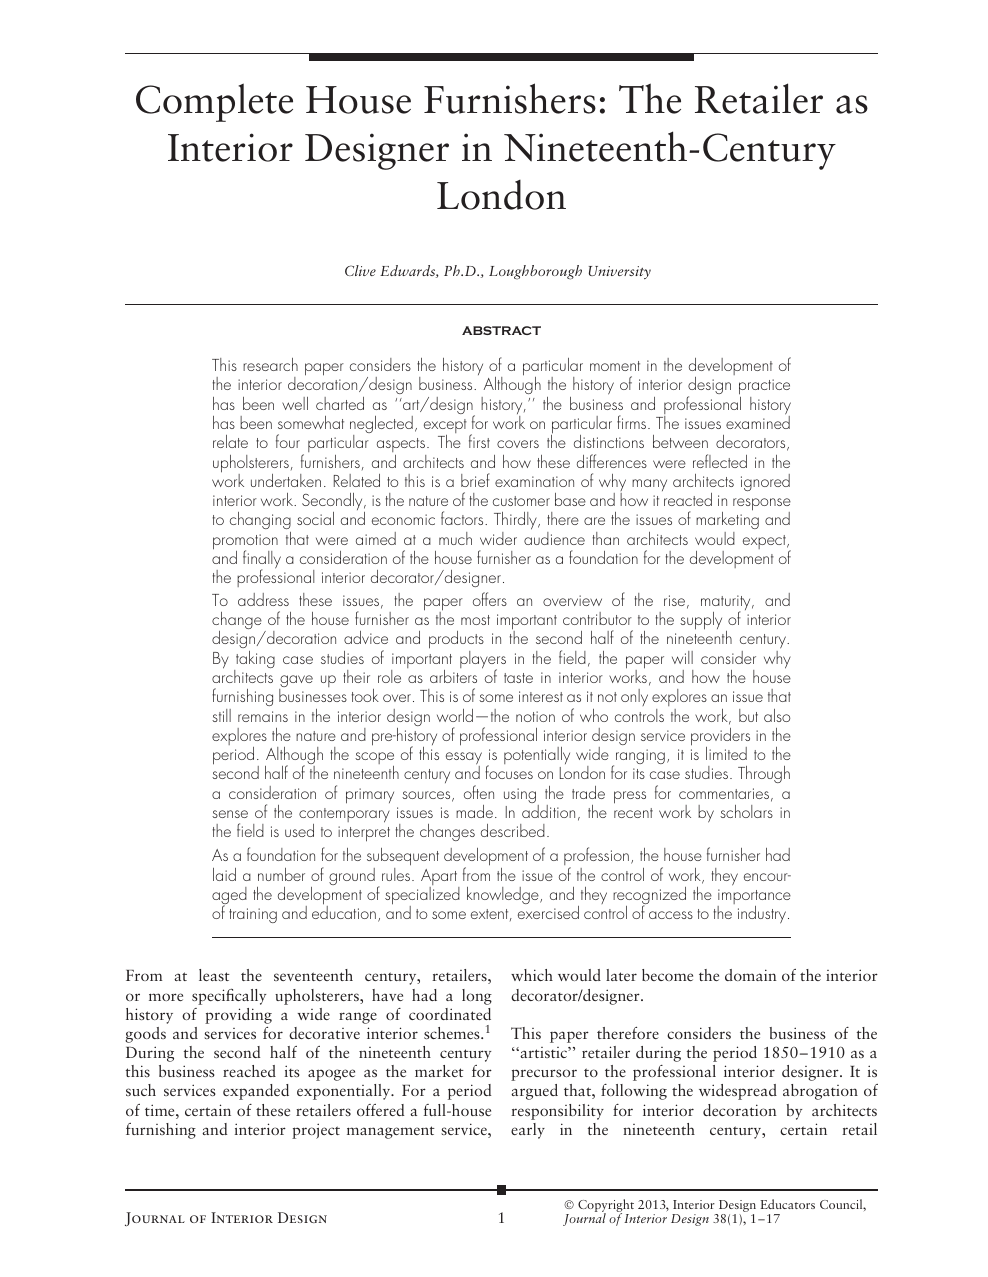 journal of interior design research